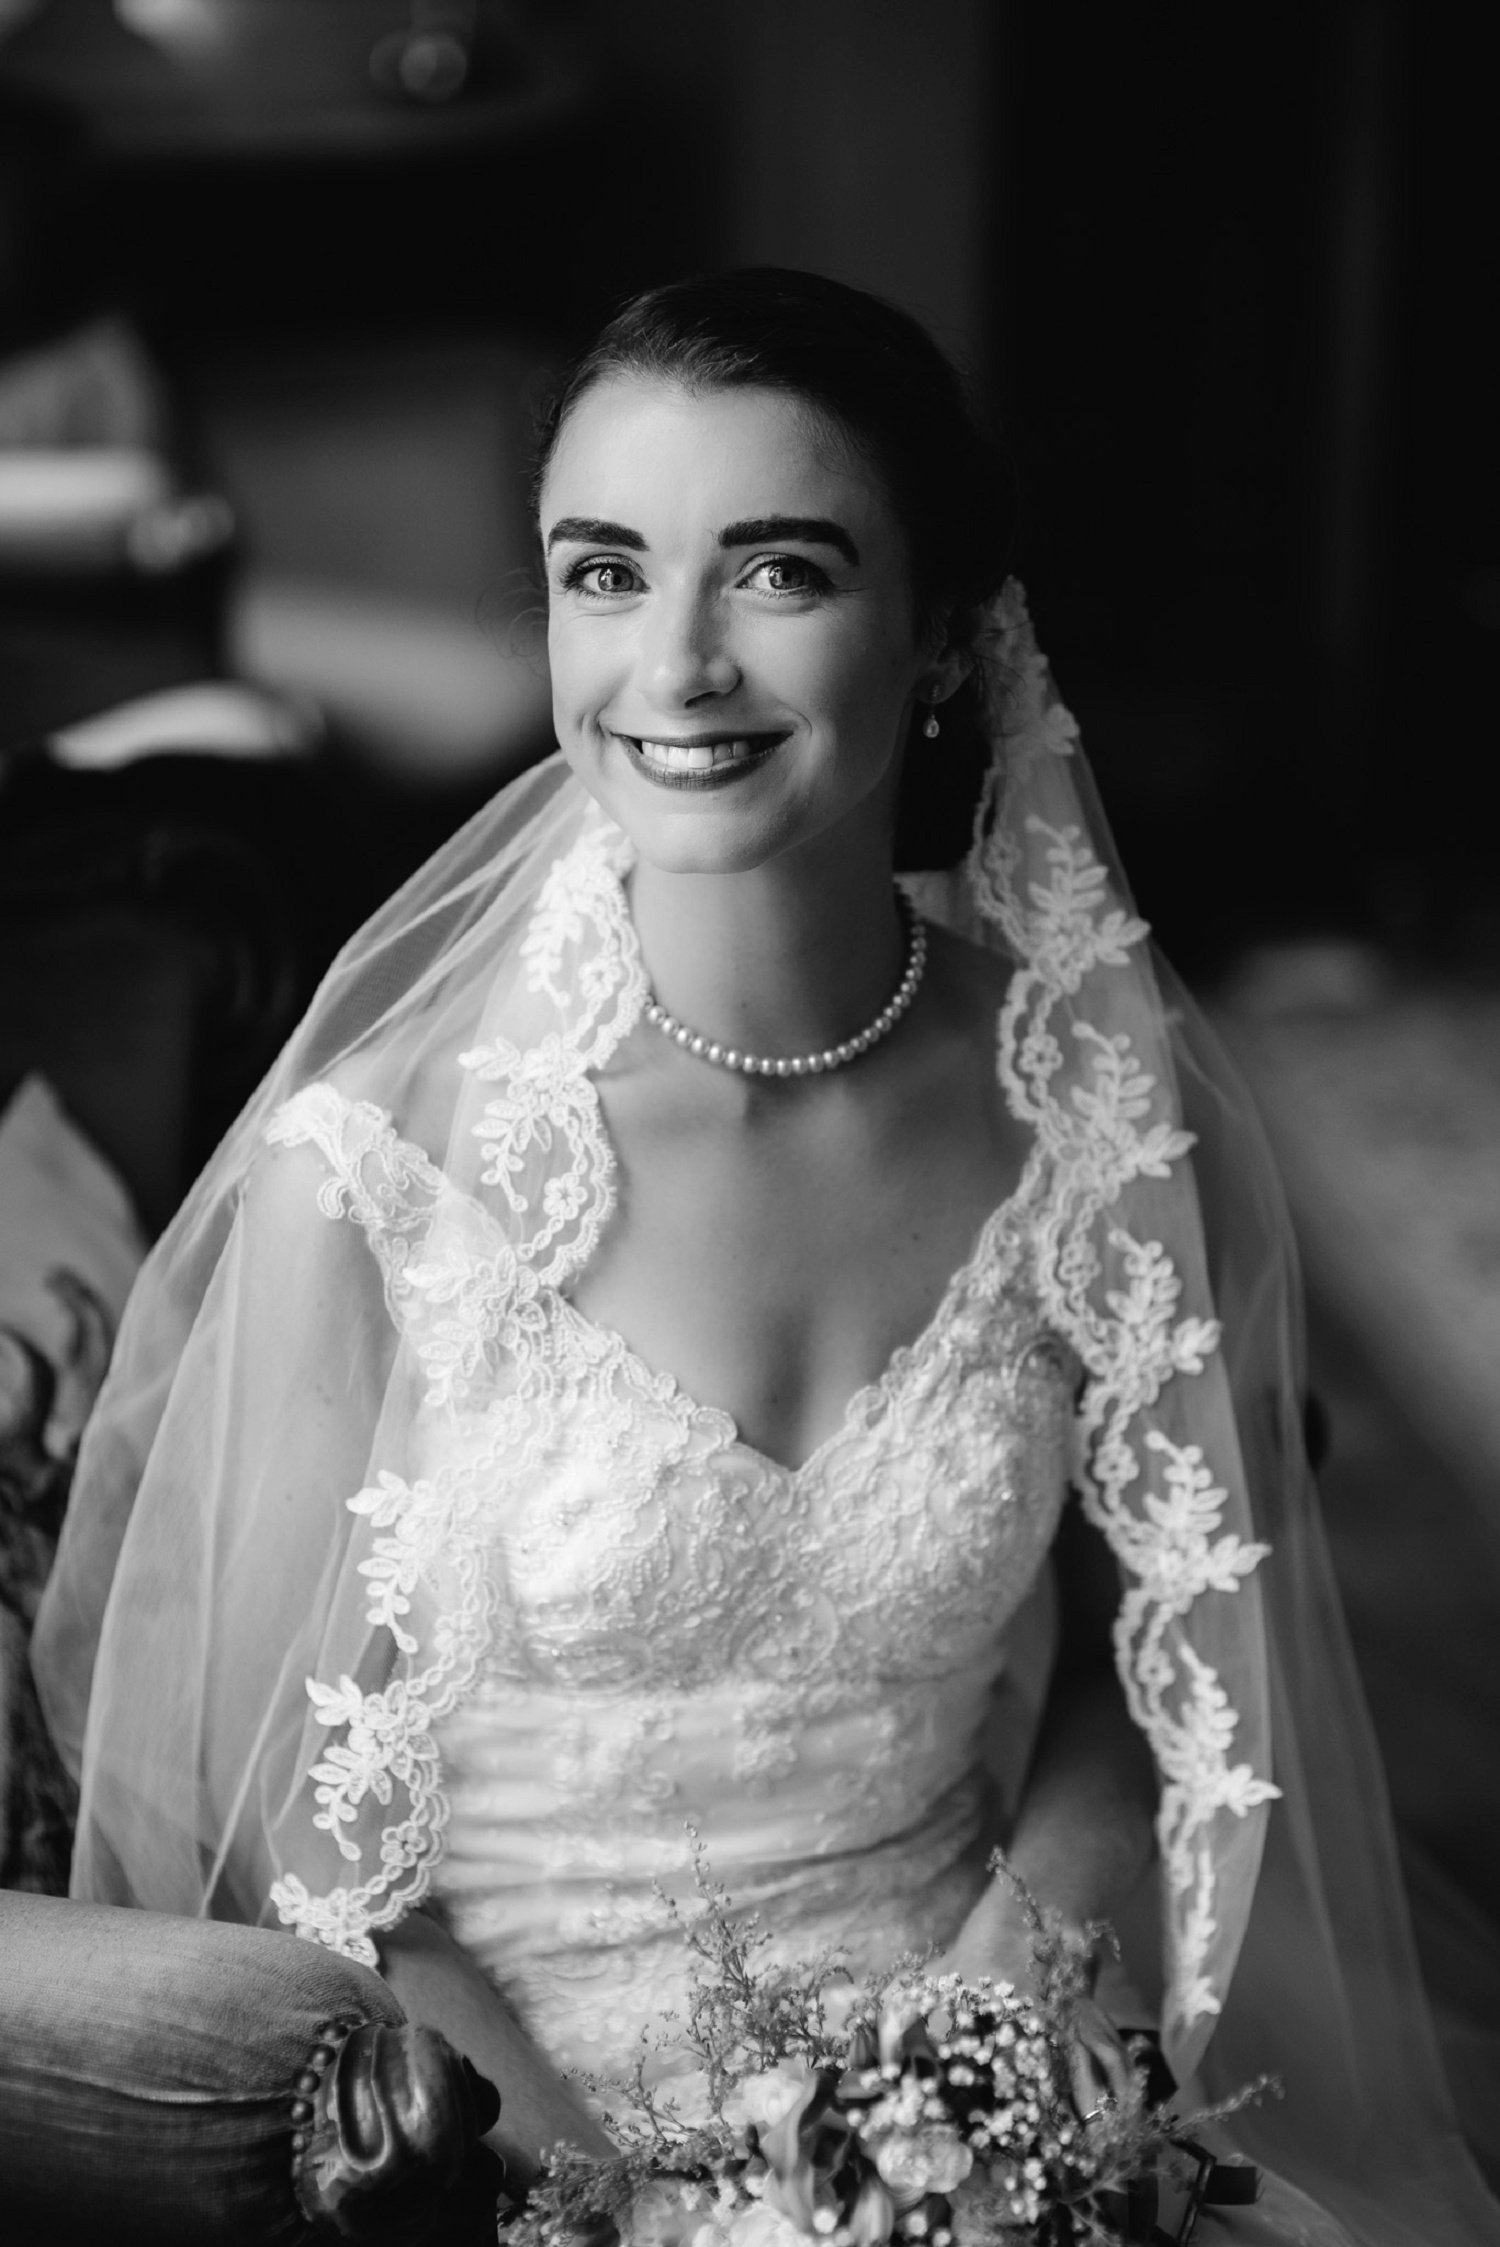 Black and white bride portrait at Glewstone Court